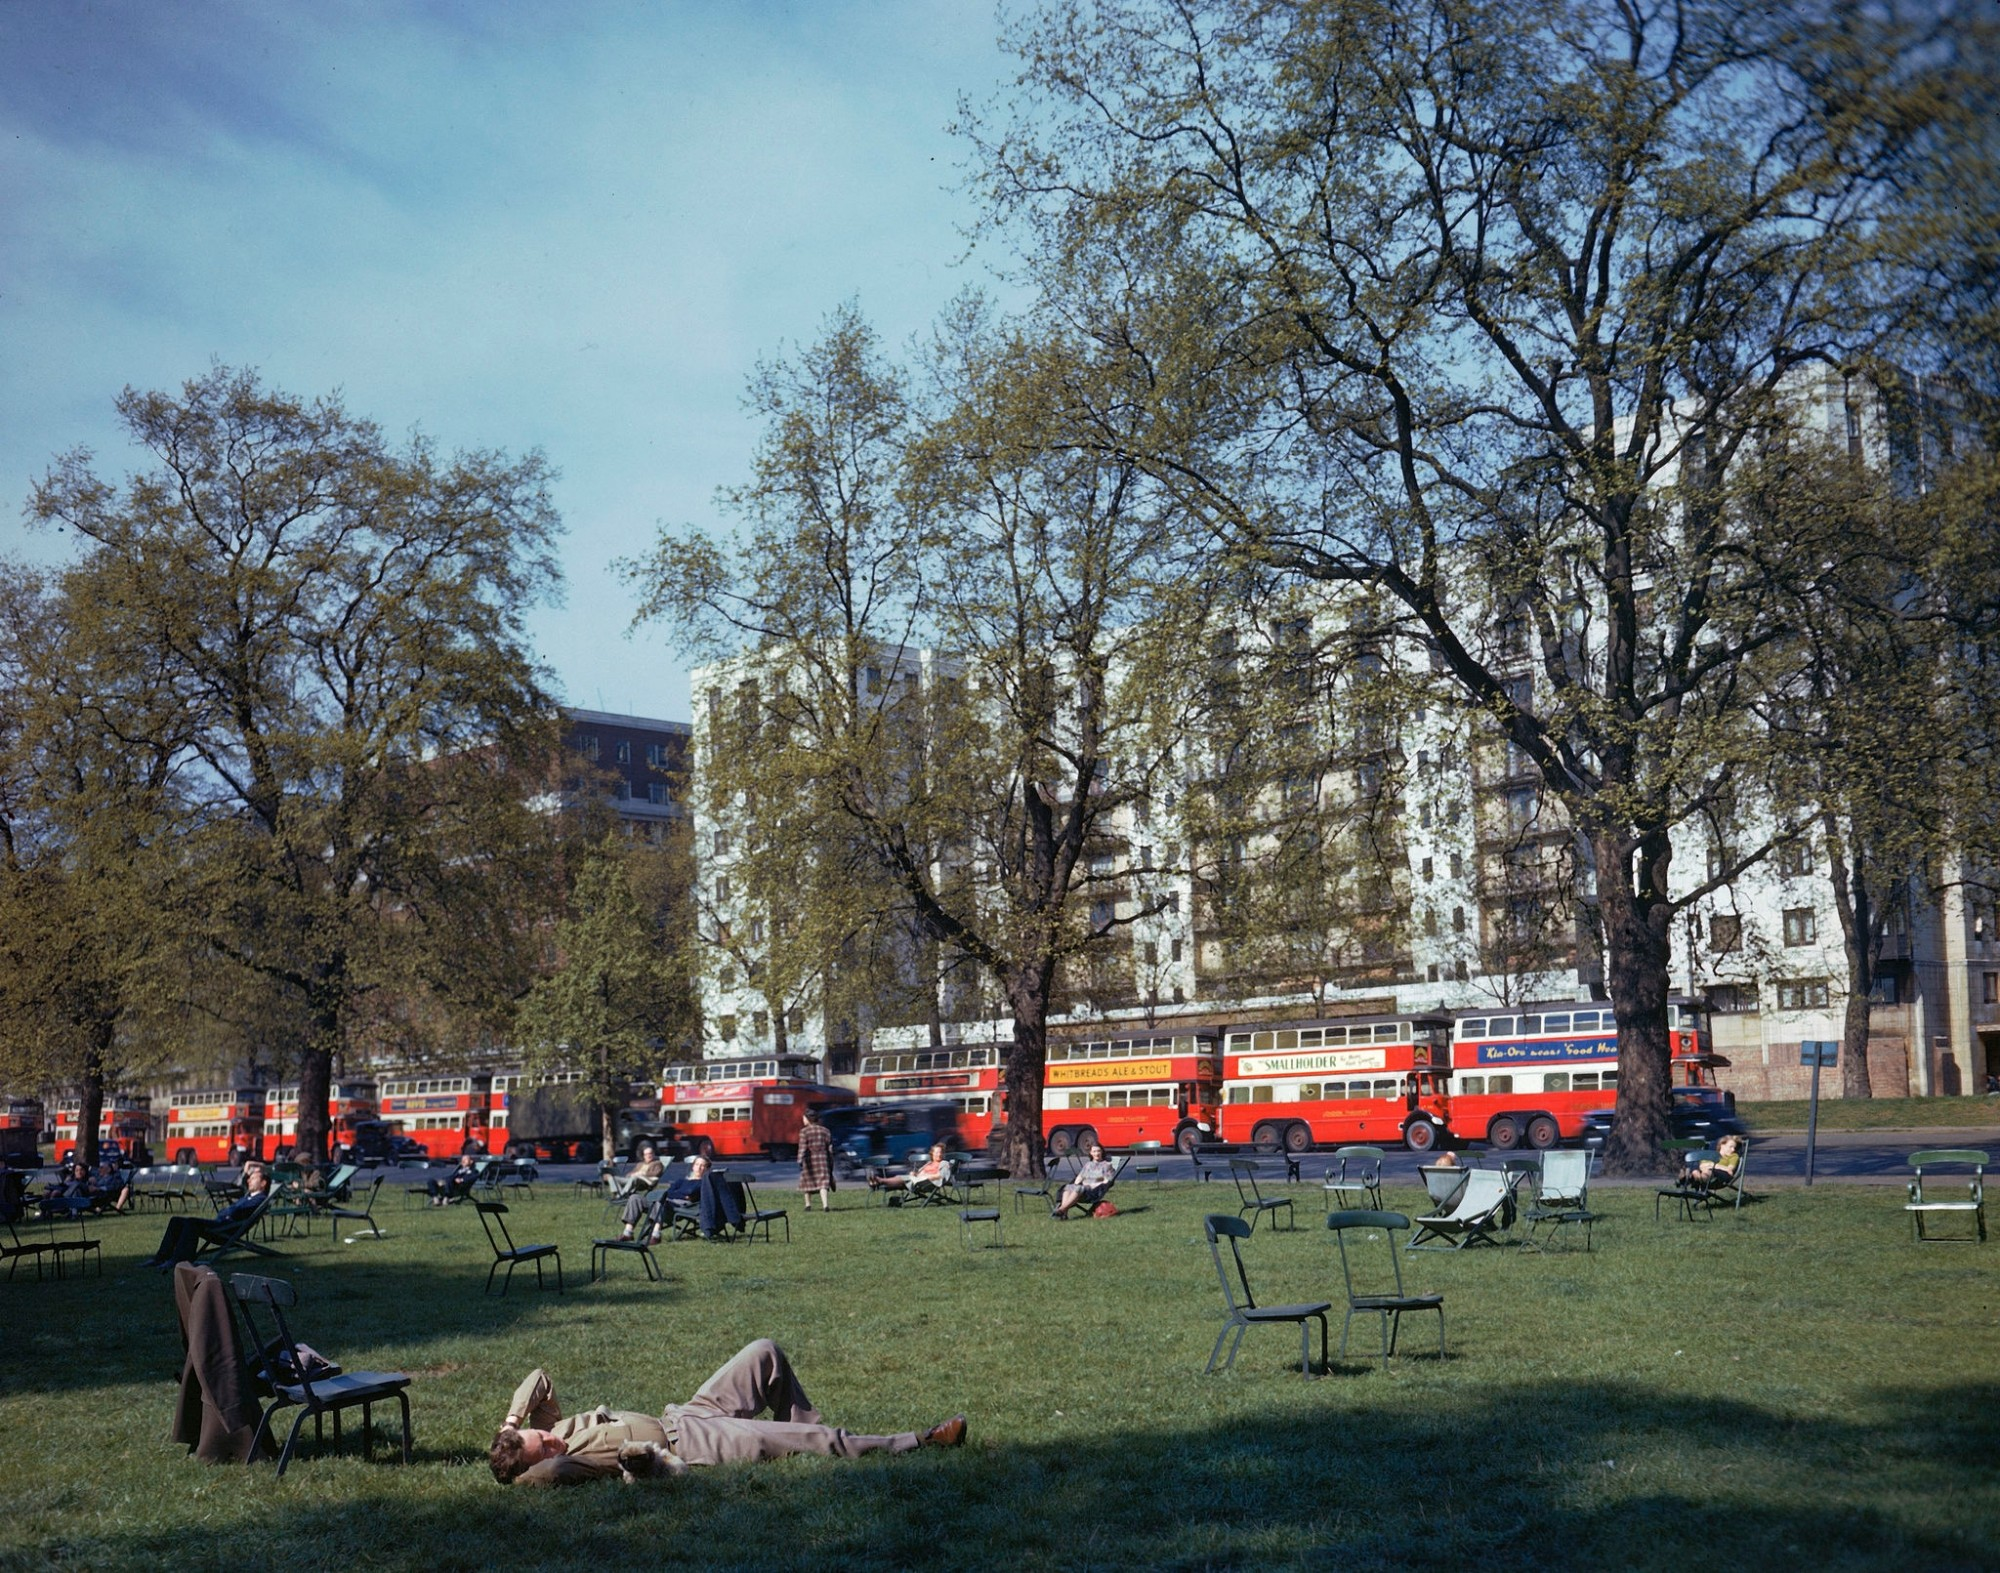 1944 London by Frank Scherschel2